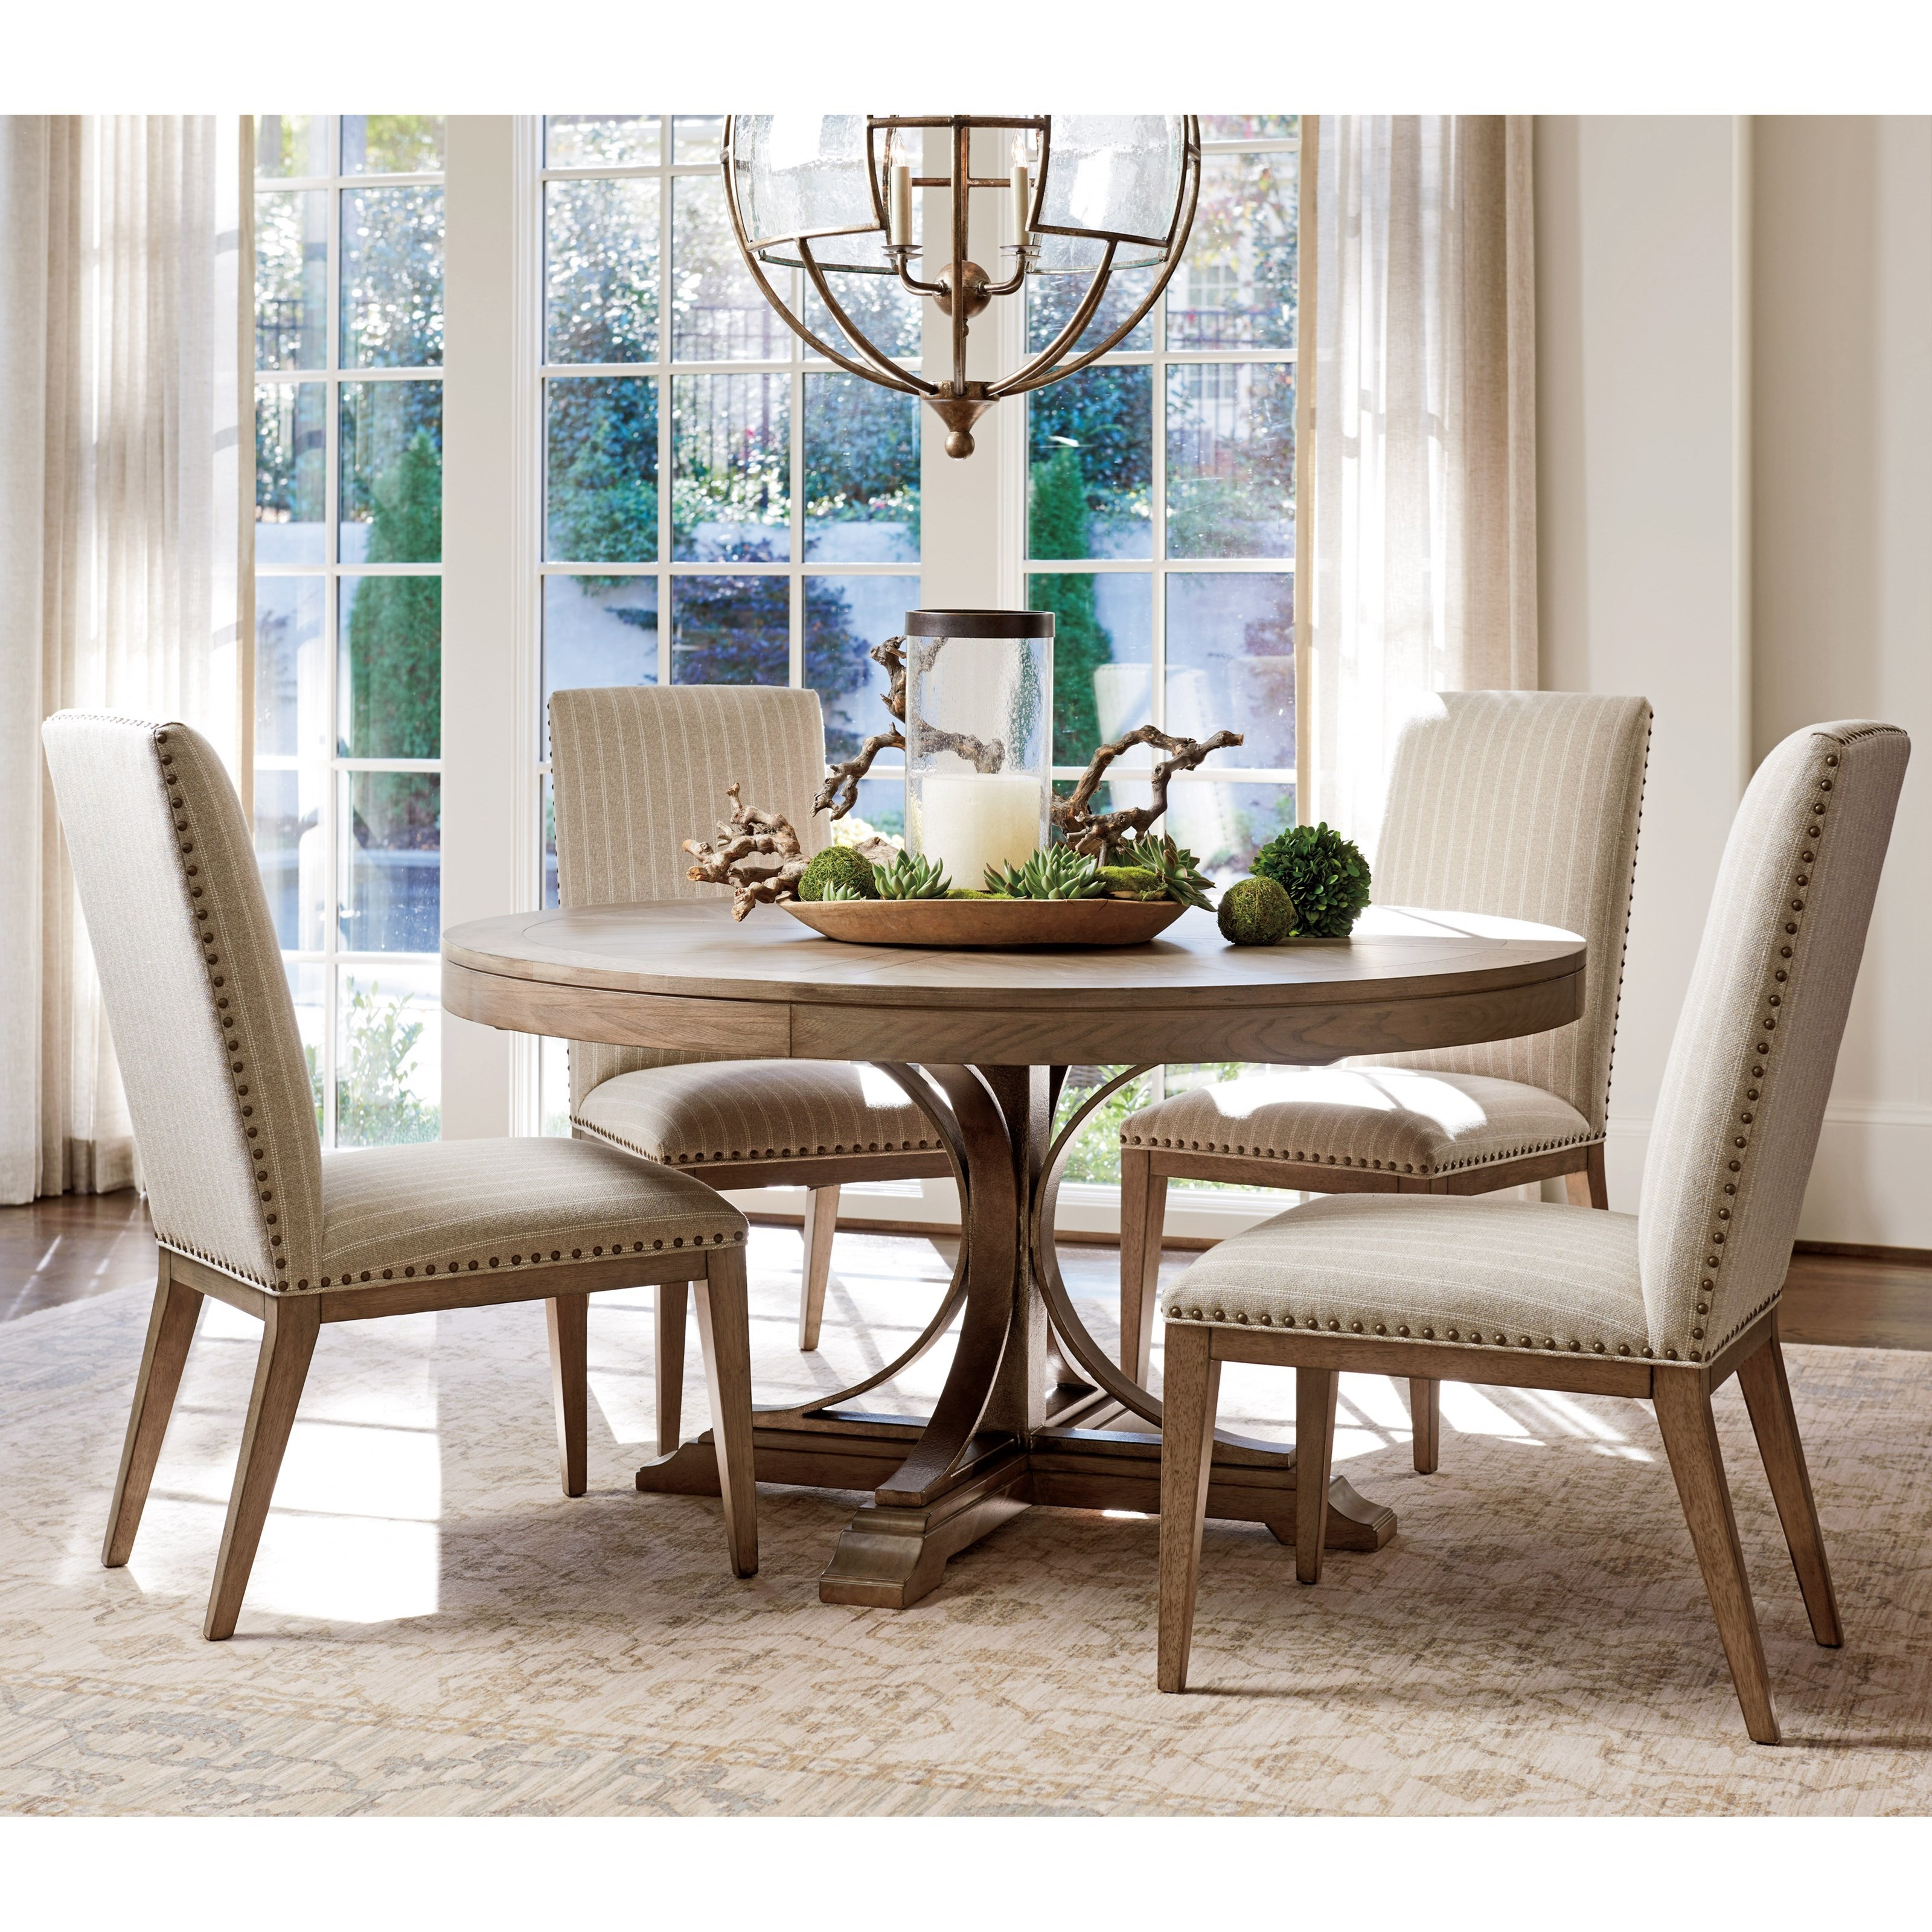 Cypress Point 5 Pc Dining Set by Tommy Bahama Home at Baer's Furniture